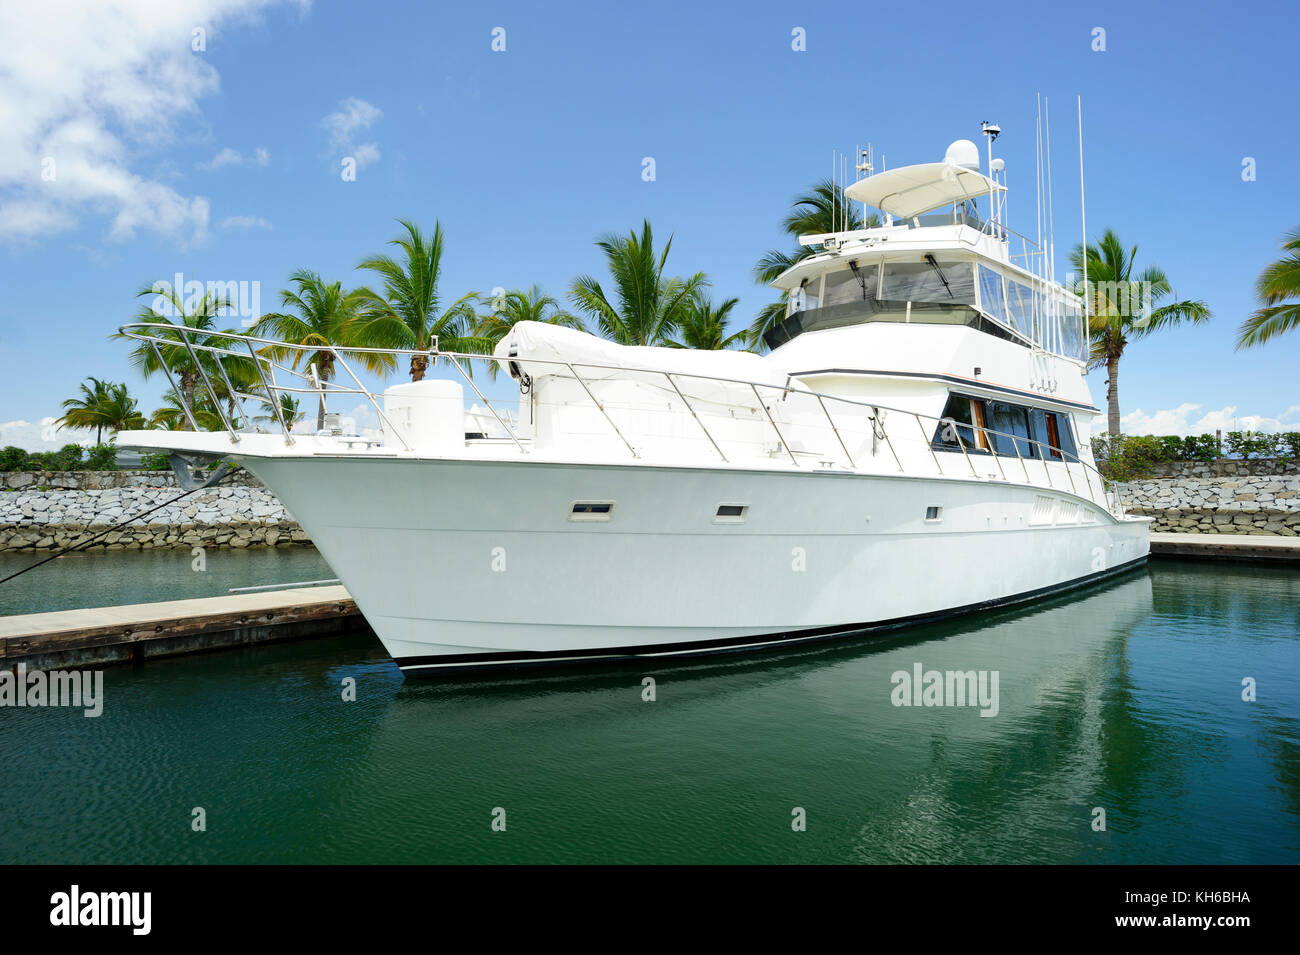 Yacht boat in dock is a large white boat sitting in its dock . - Stock Image